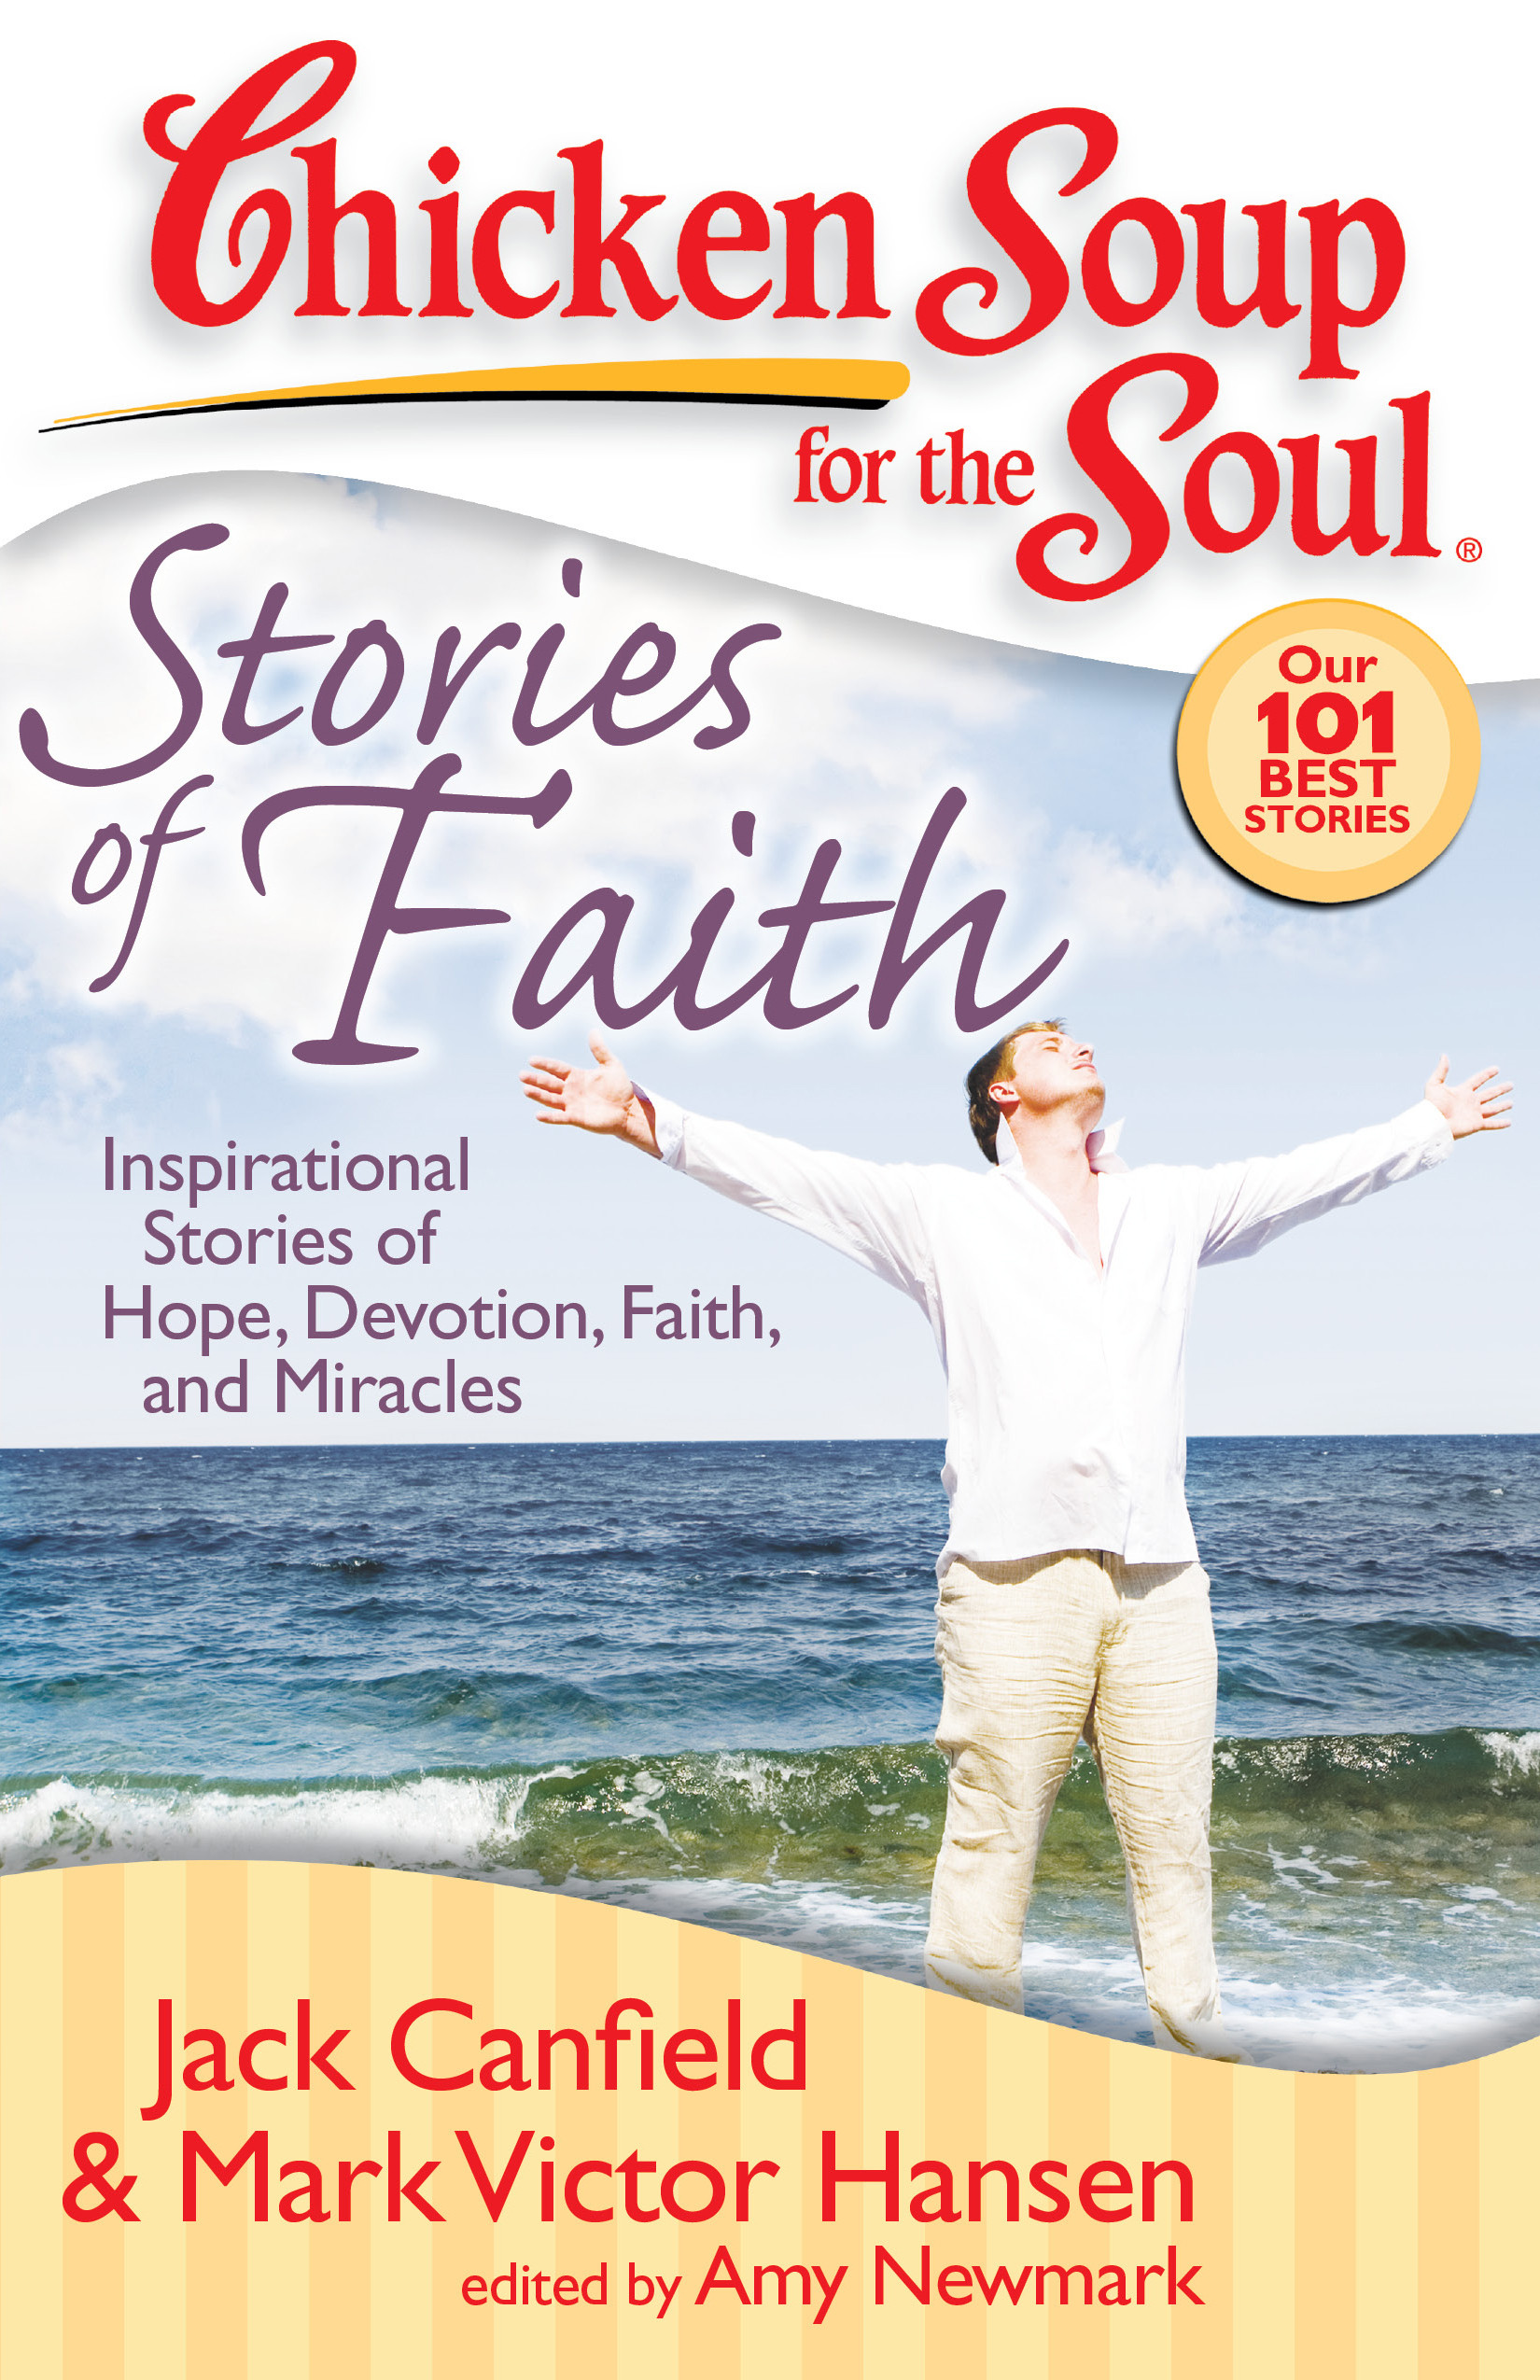 Chicken Soup For The Soul Books  Chicken Soup for the Soul Stories of Faith